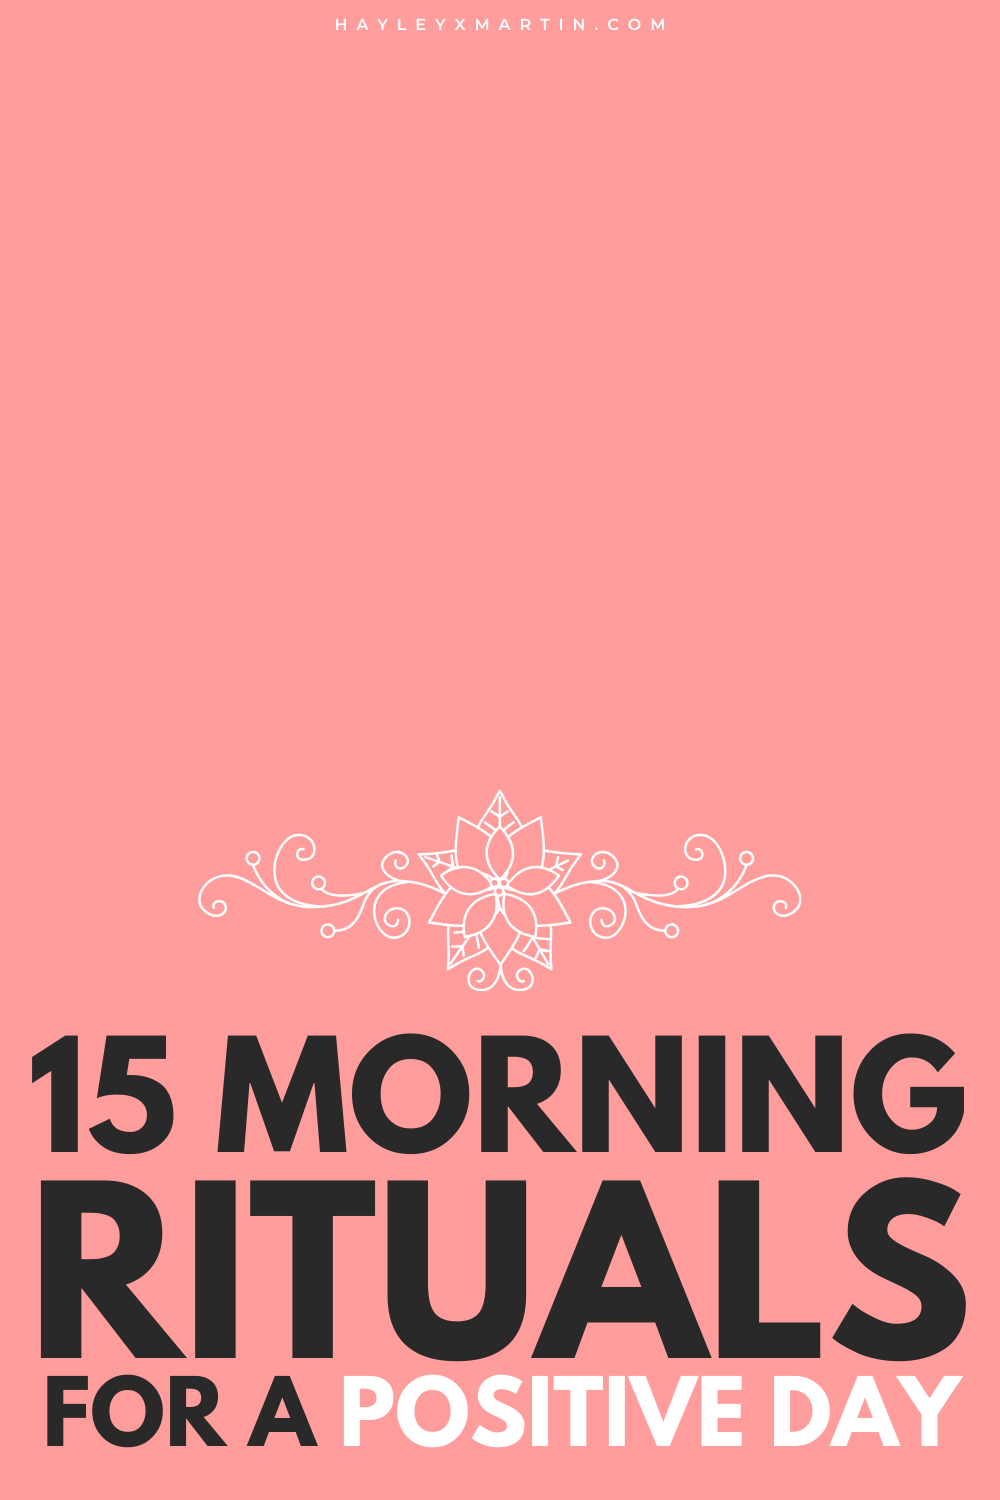 15 MORNING RITUALS FOR A POSITIVE DAY | MORNING ROUTINE | HAYLEYXMARTIN